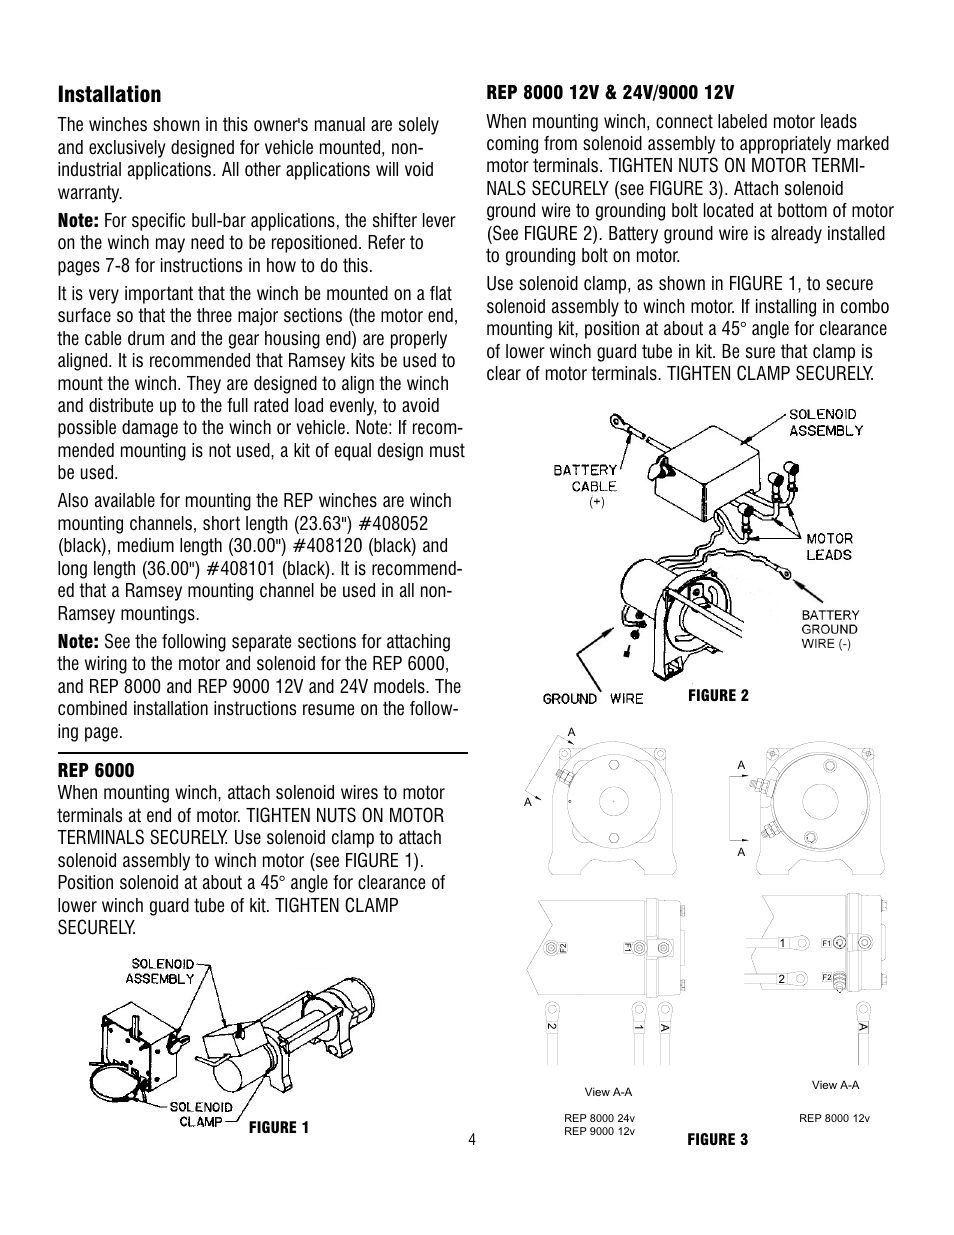 installation ramsey winch rep 6000 8000 9000 current user manual rh  manualsdir com ramsey winch solenoid wiring diagram ramsey winch controller  wiring ...